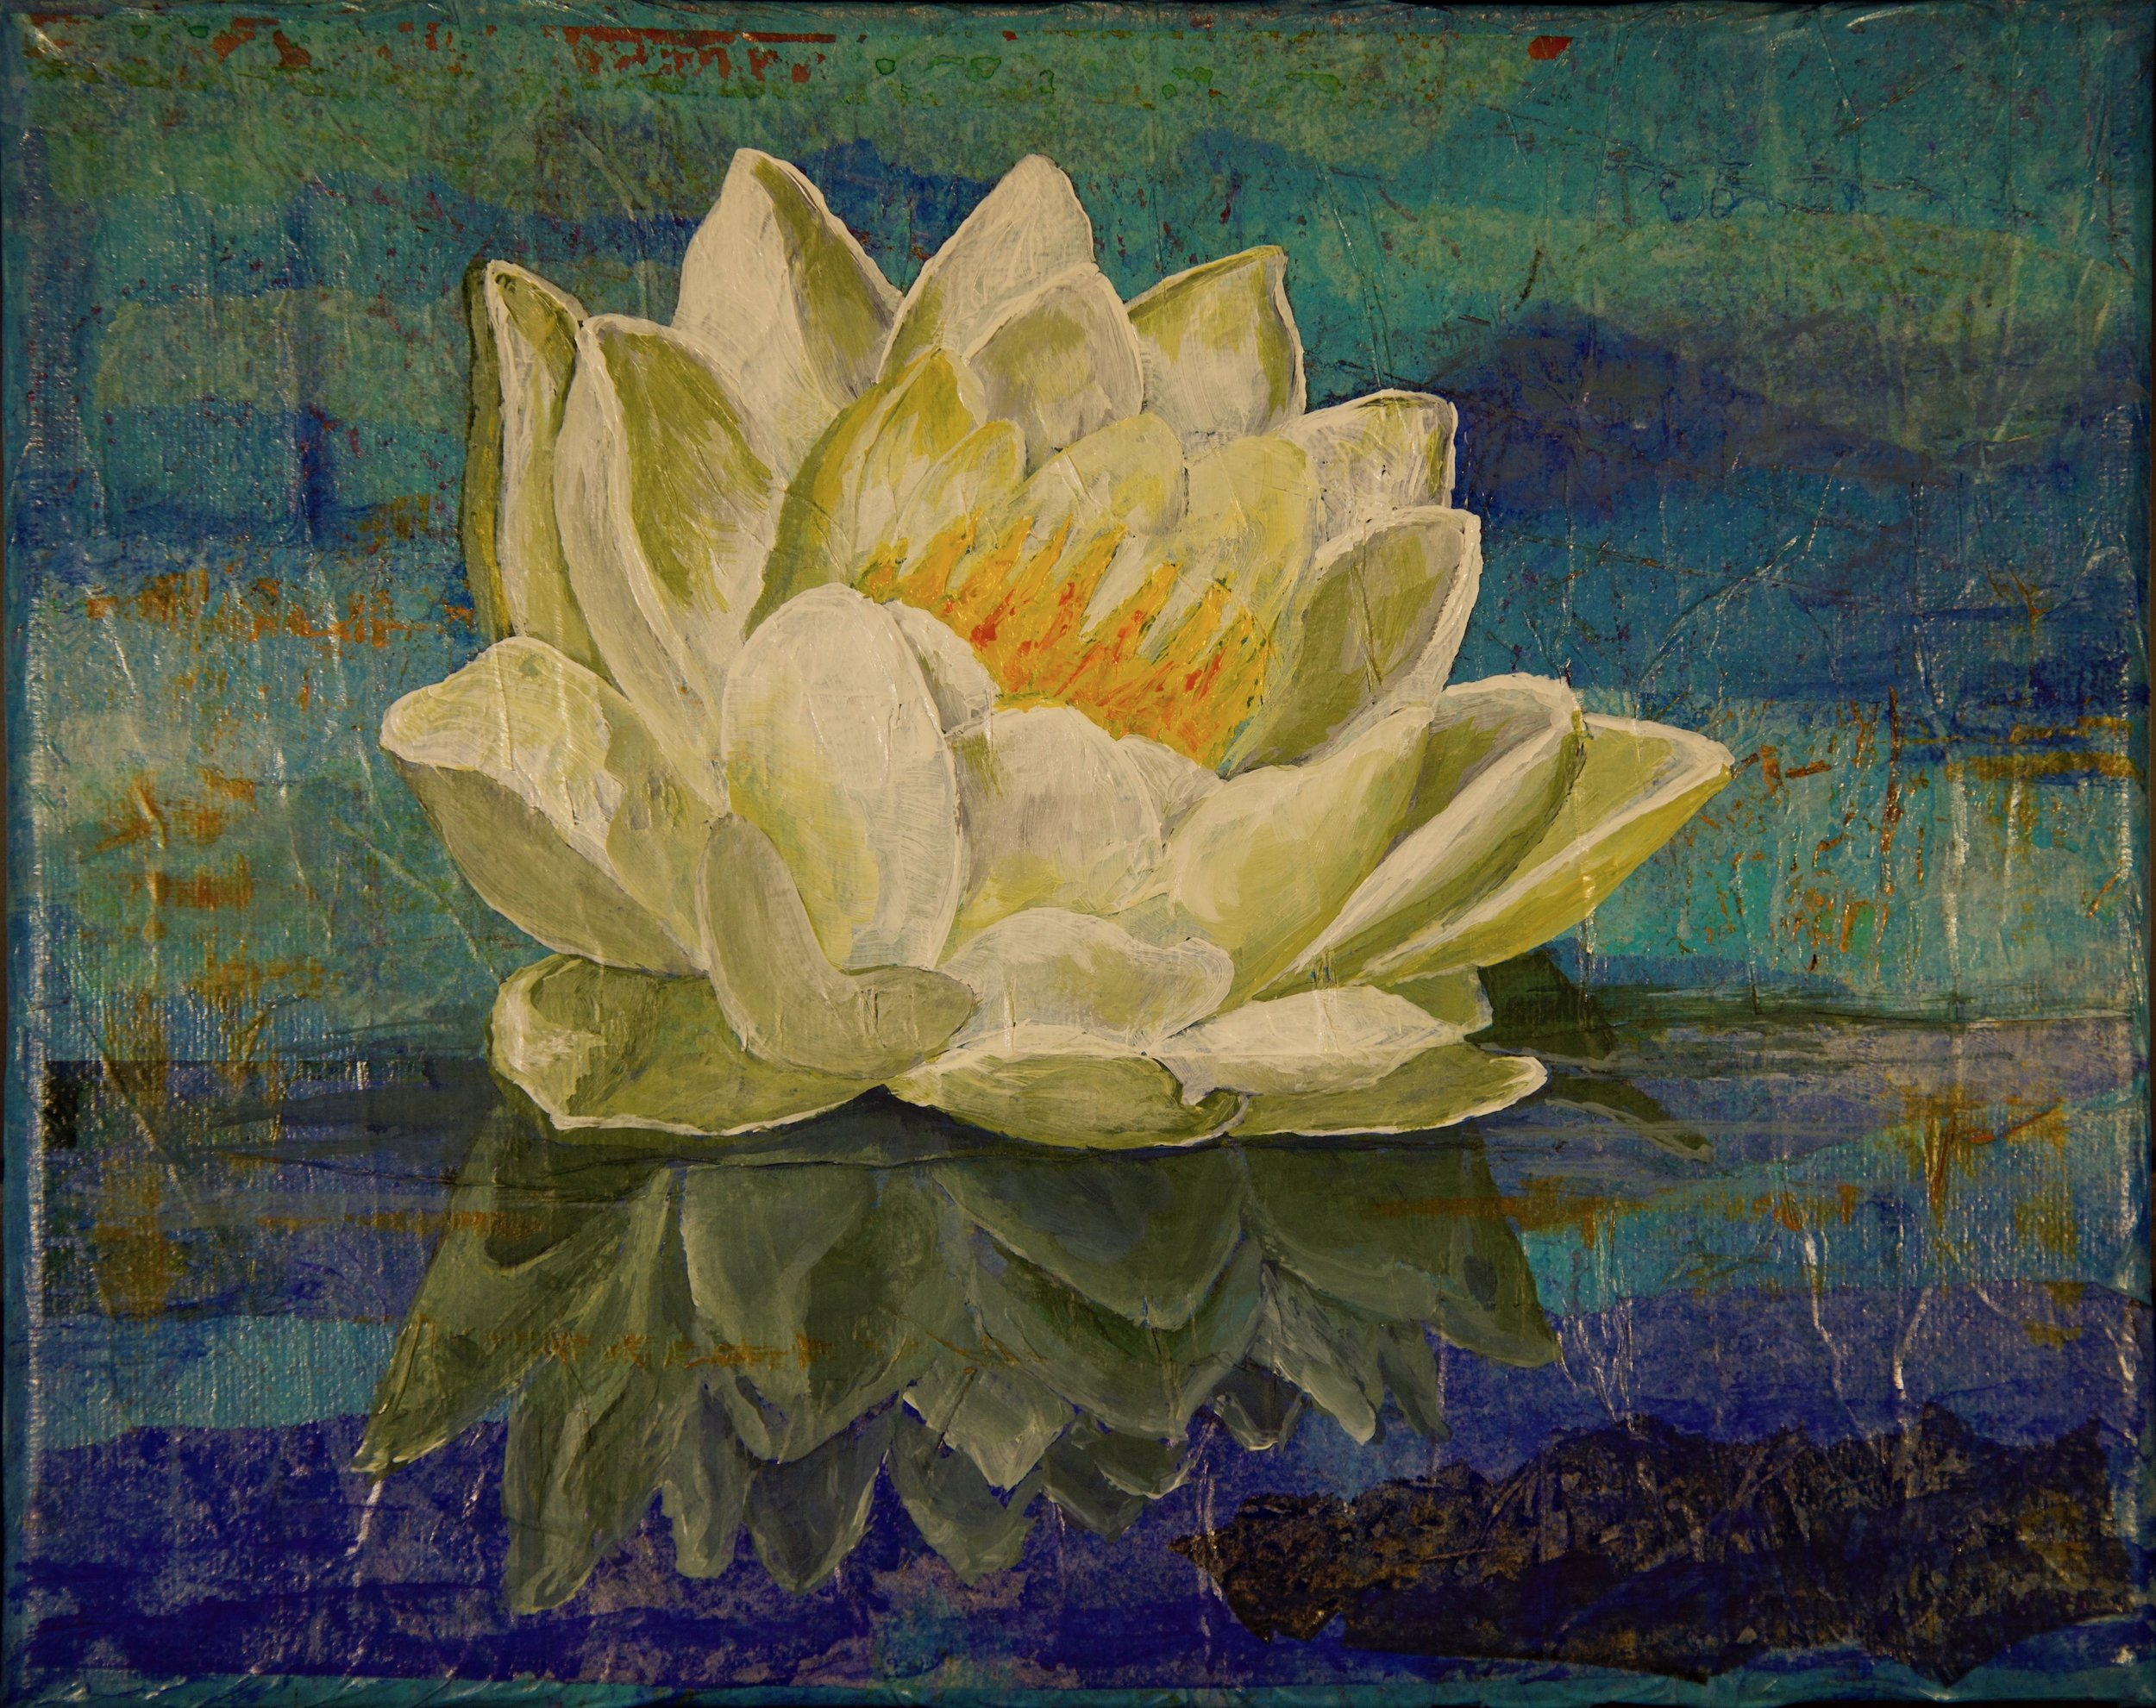 From the Kayak IV - Water Lily